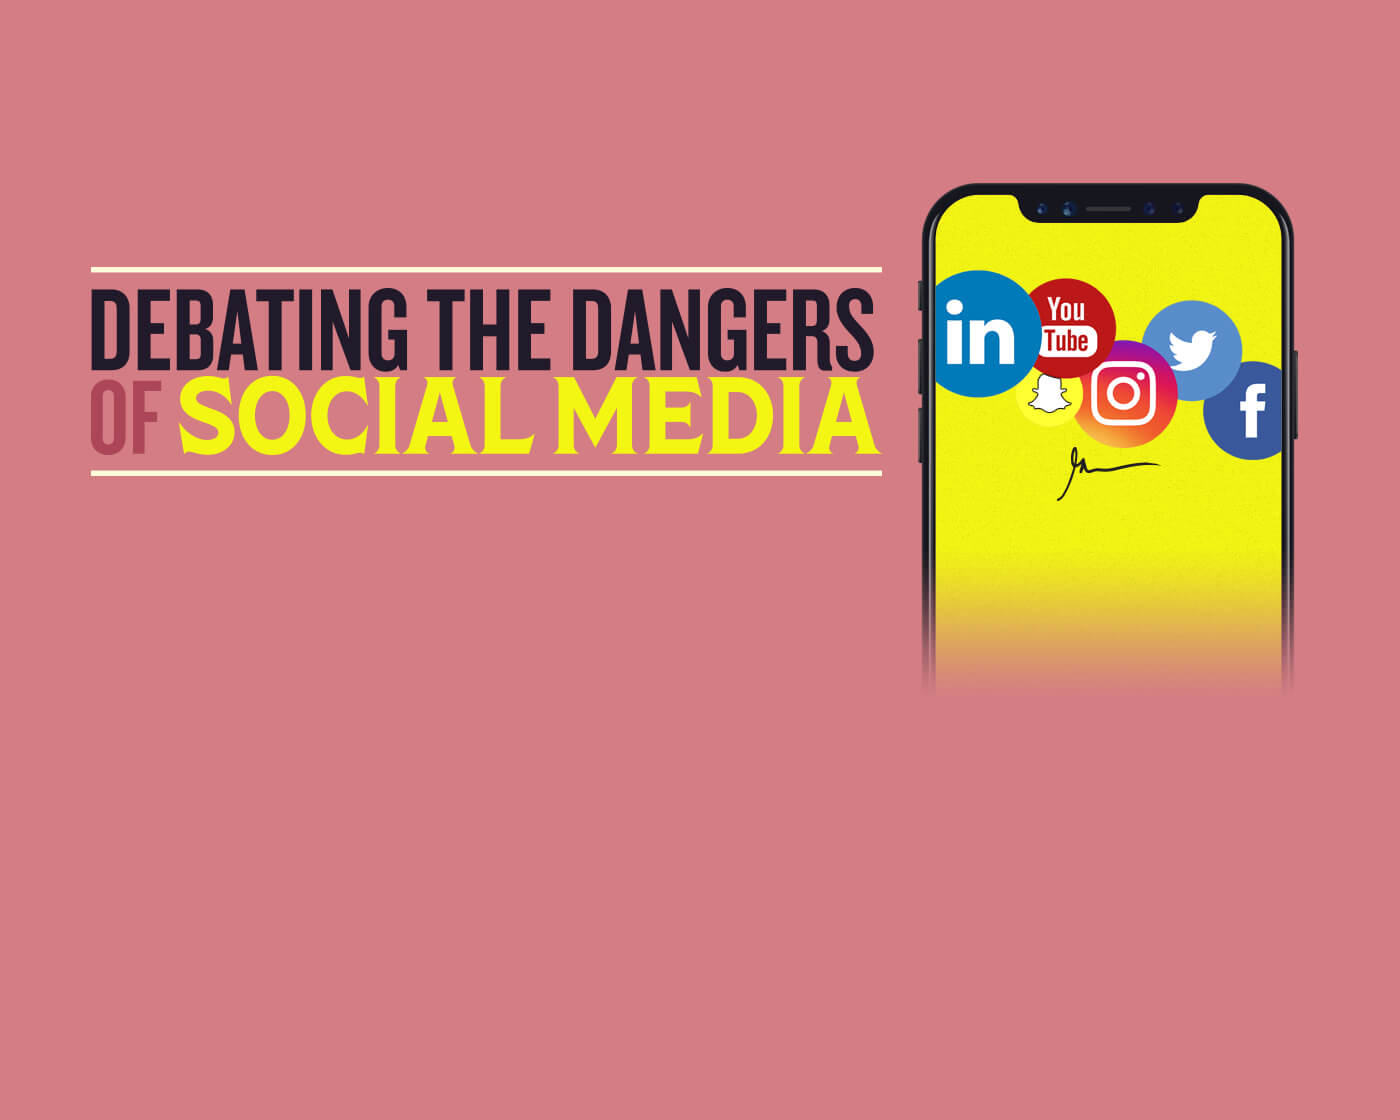 Social Media's Negative Effects on Kids: A Platform or Parenting